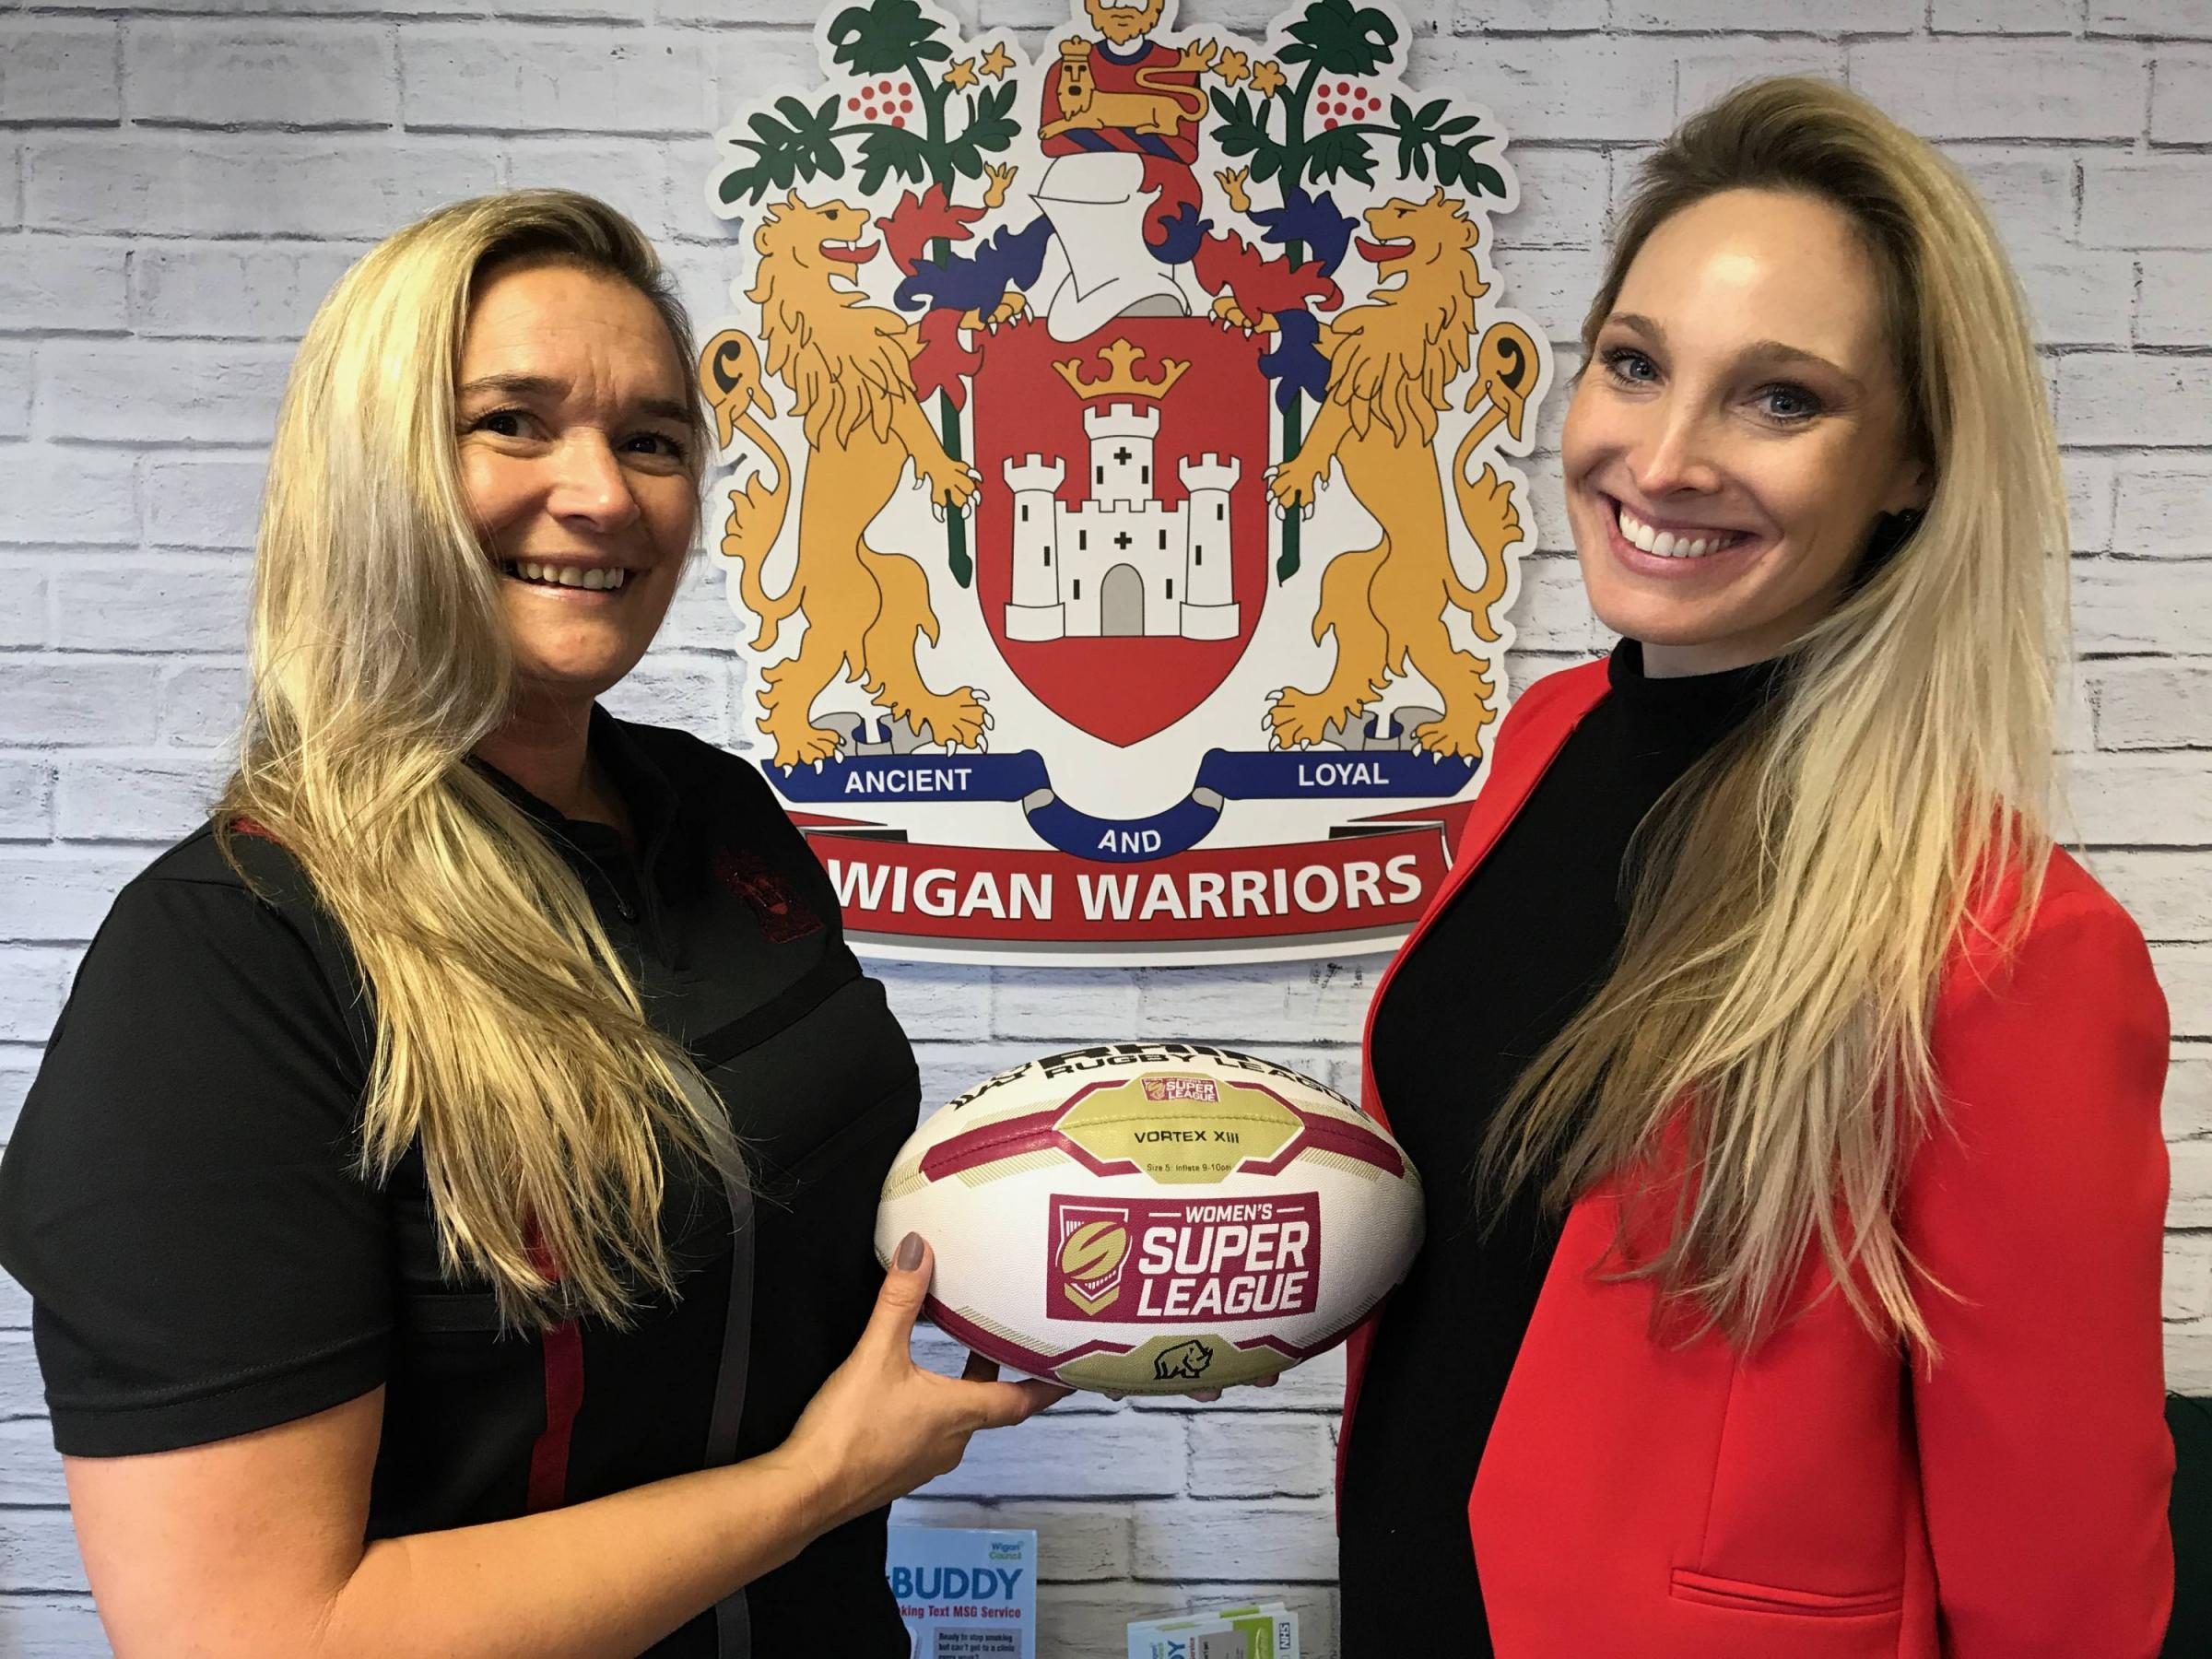 Wigan Warriors women's coach Amanda Wilkinson (left) with Jenna Brooks, from Sky Sports, at the launch of the new team WIGAN WARRIORS